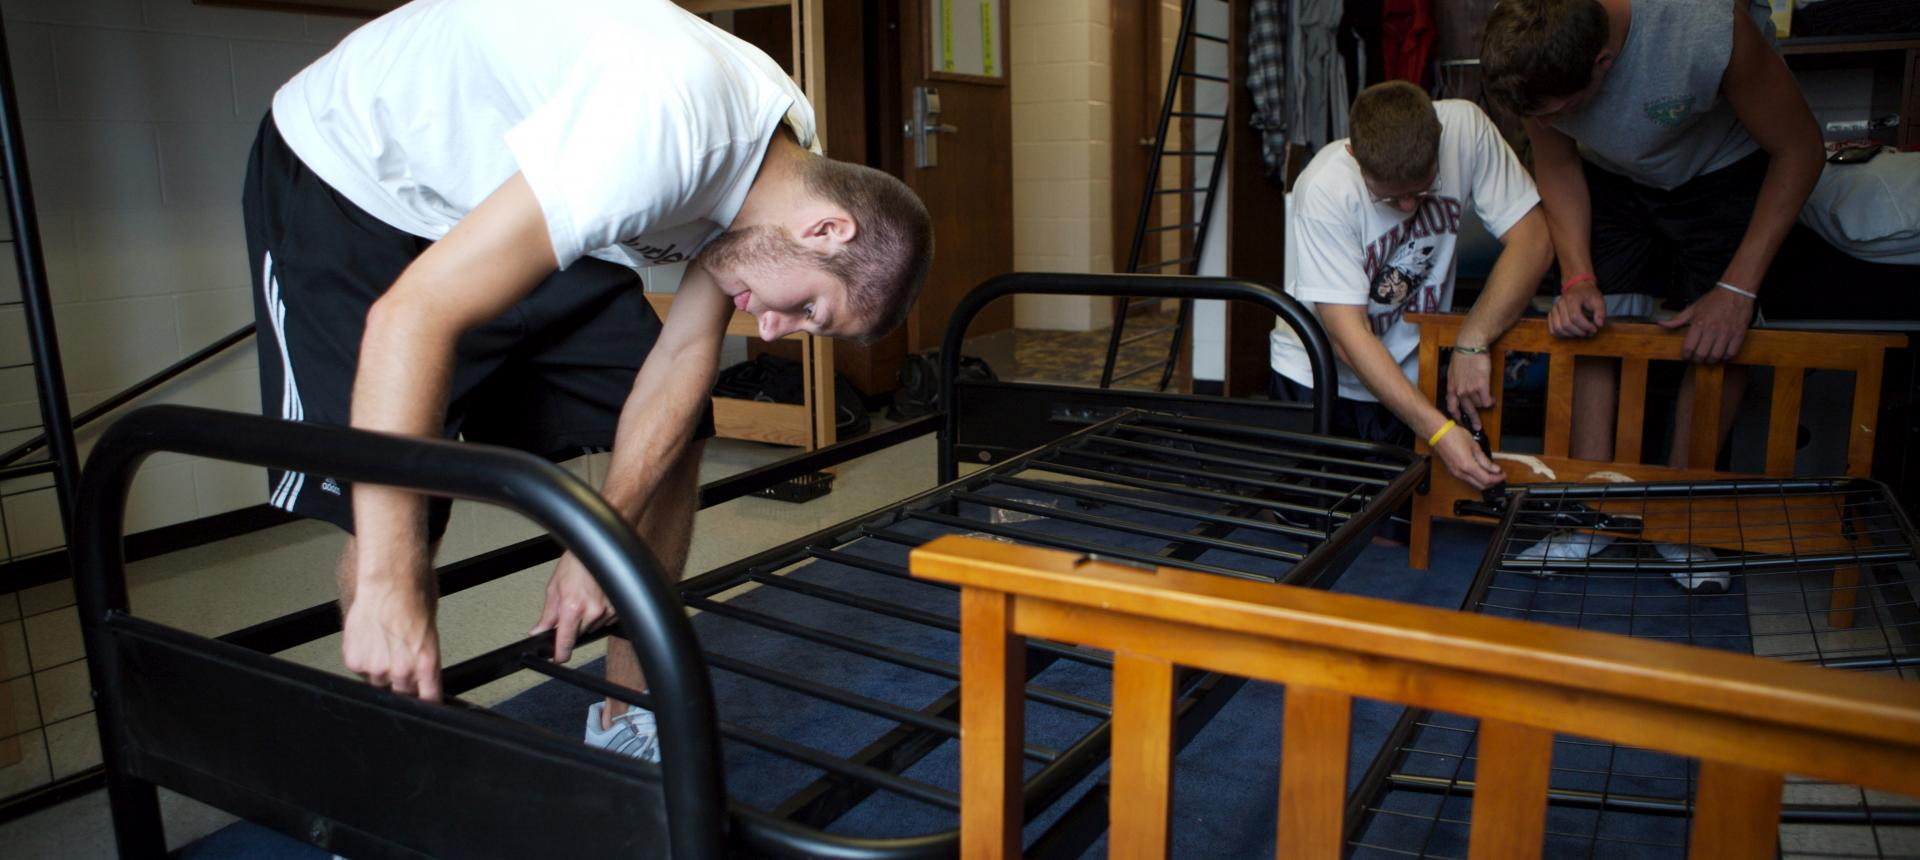 Putting a futon together.